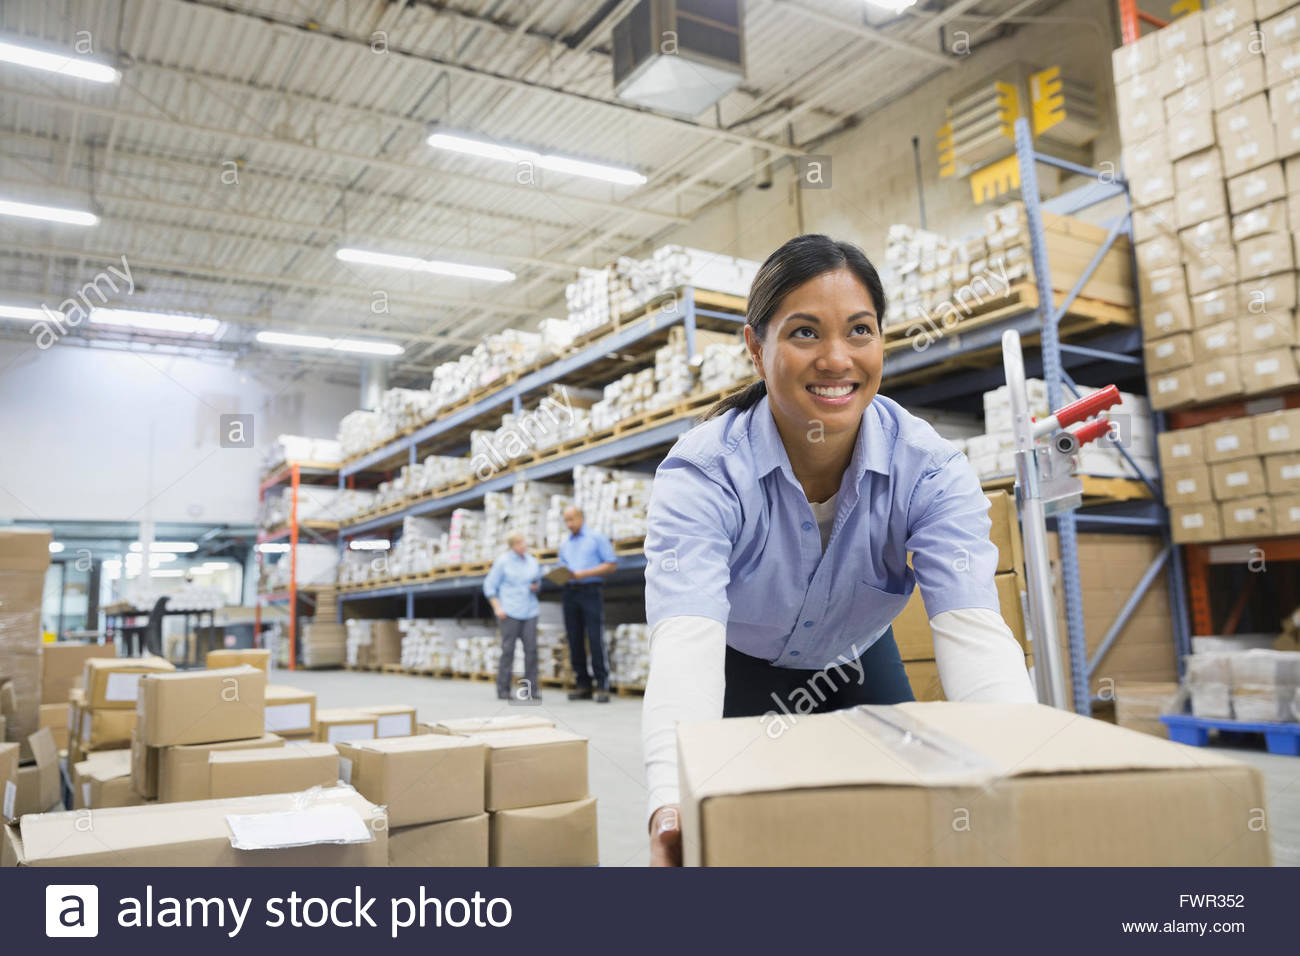 Female worker with boxes in warehouse - Stock Image